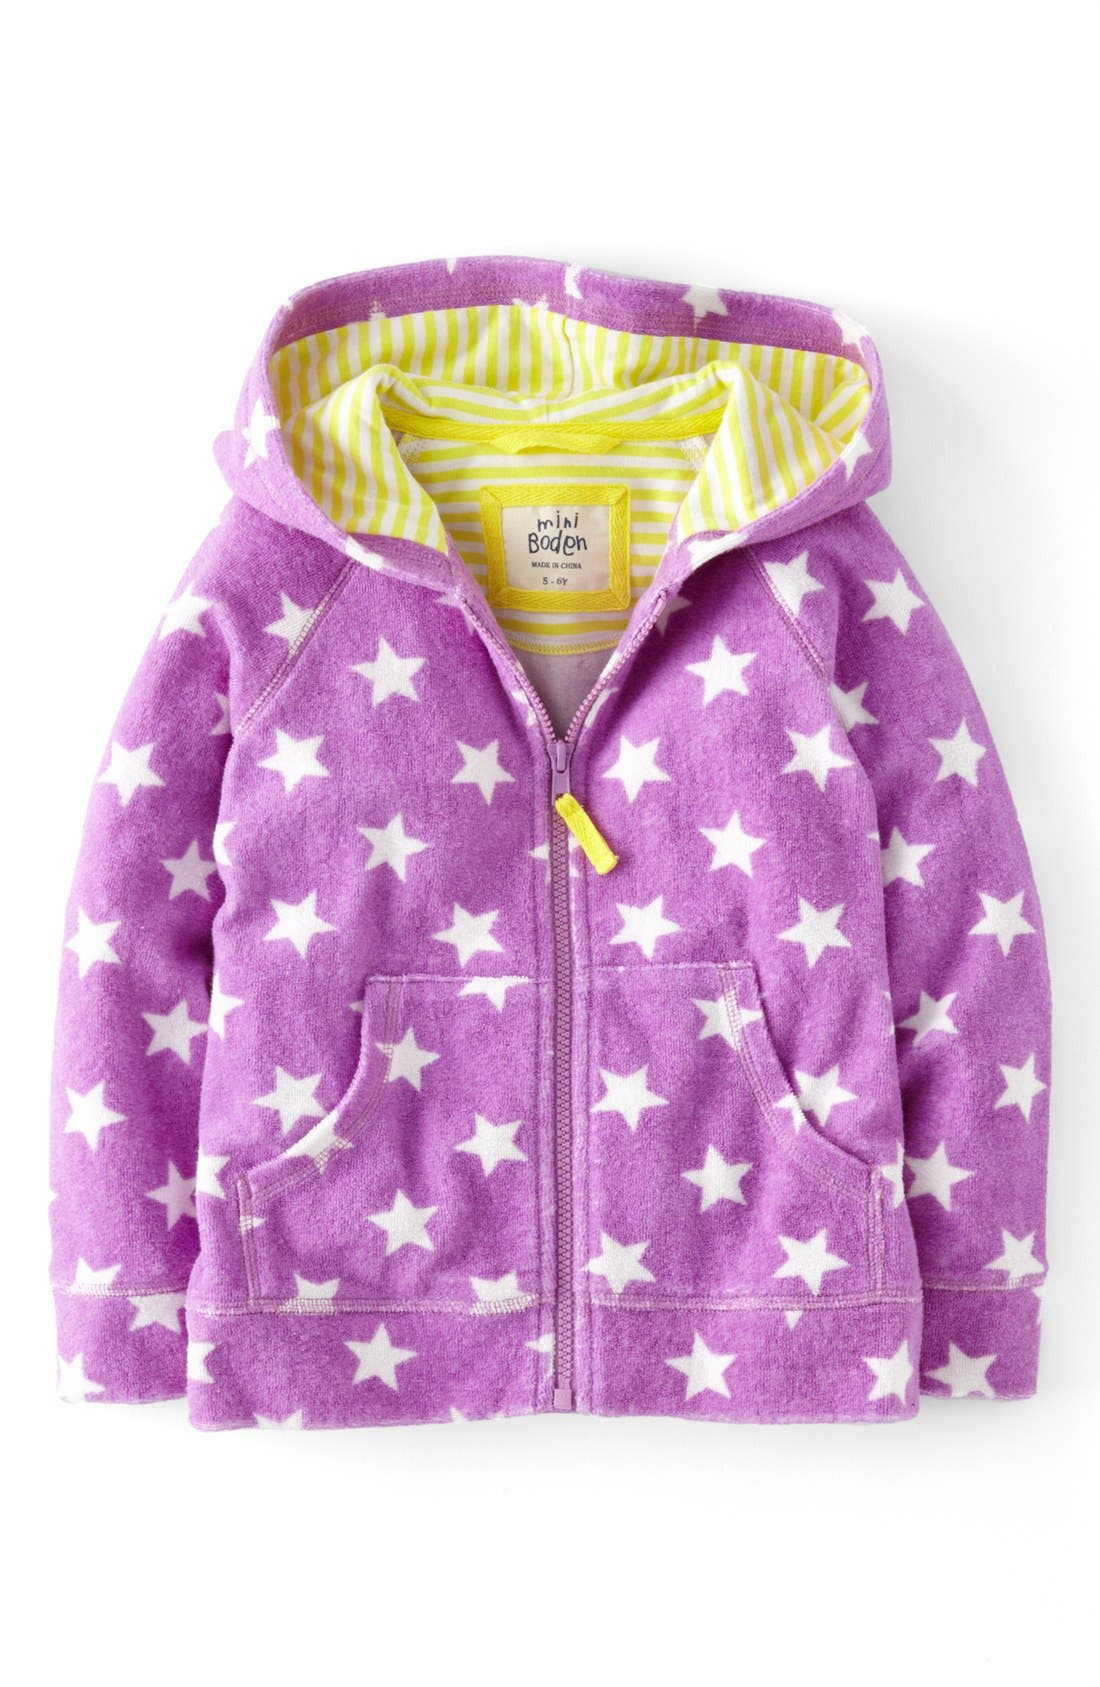 Main Image - Mini Boden 'Towelling' Hoodie (Toddler Girls, Little Girls & Big Girls)(Online Only)